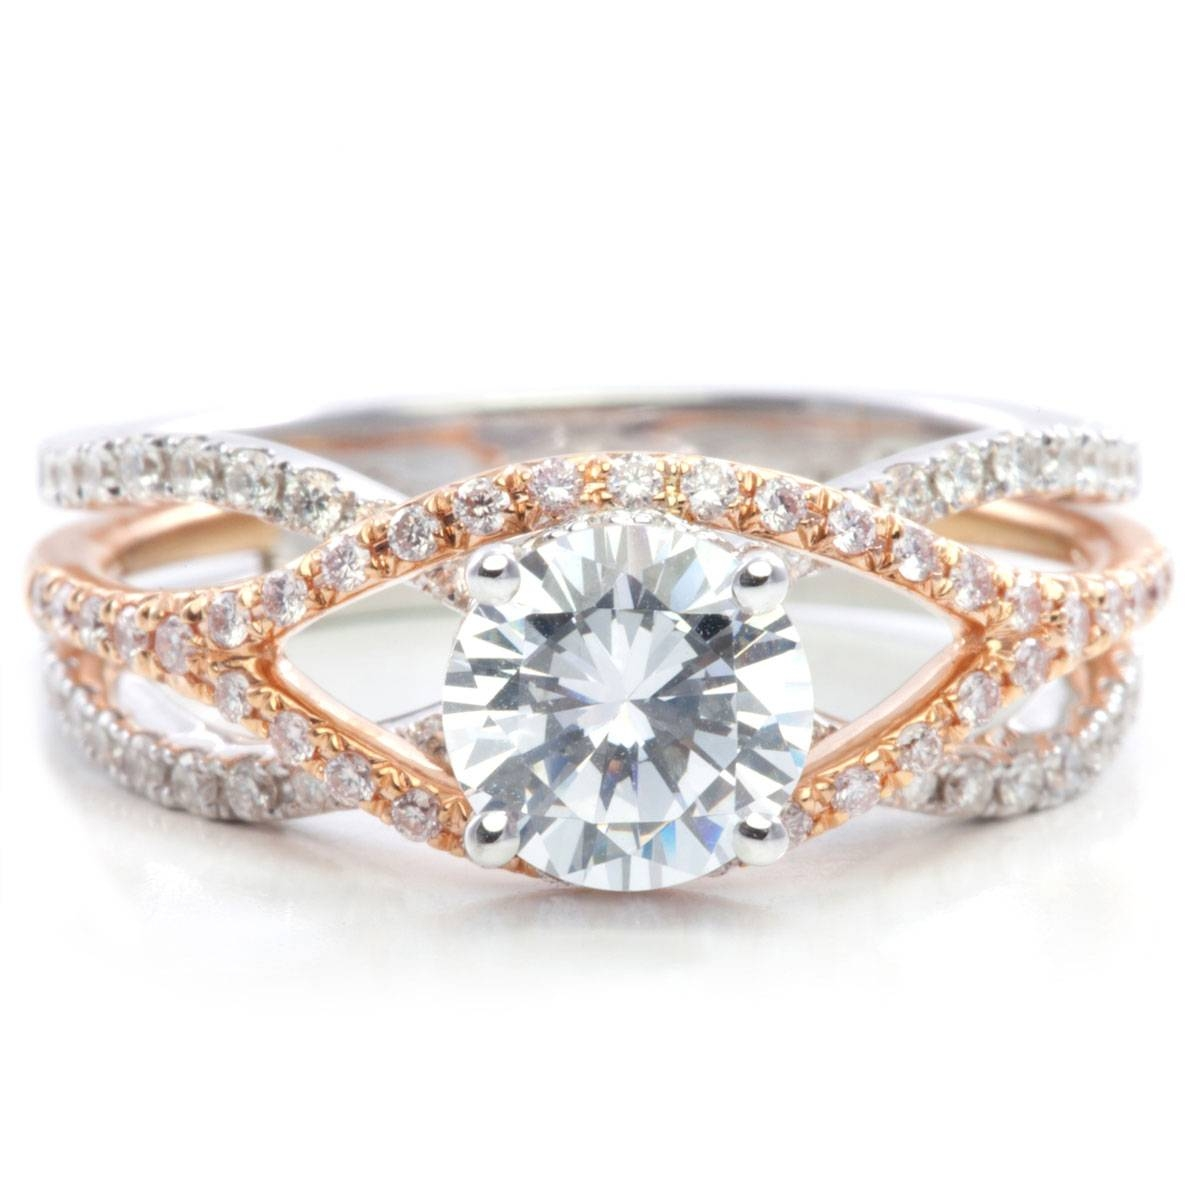 Wedding Rings : Gold Rose Ring Zales Engagement Rings Rose Gold Within San Diego Engagement Rings (View 5 of 15)